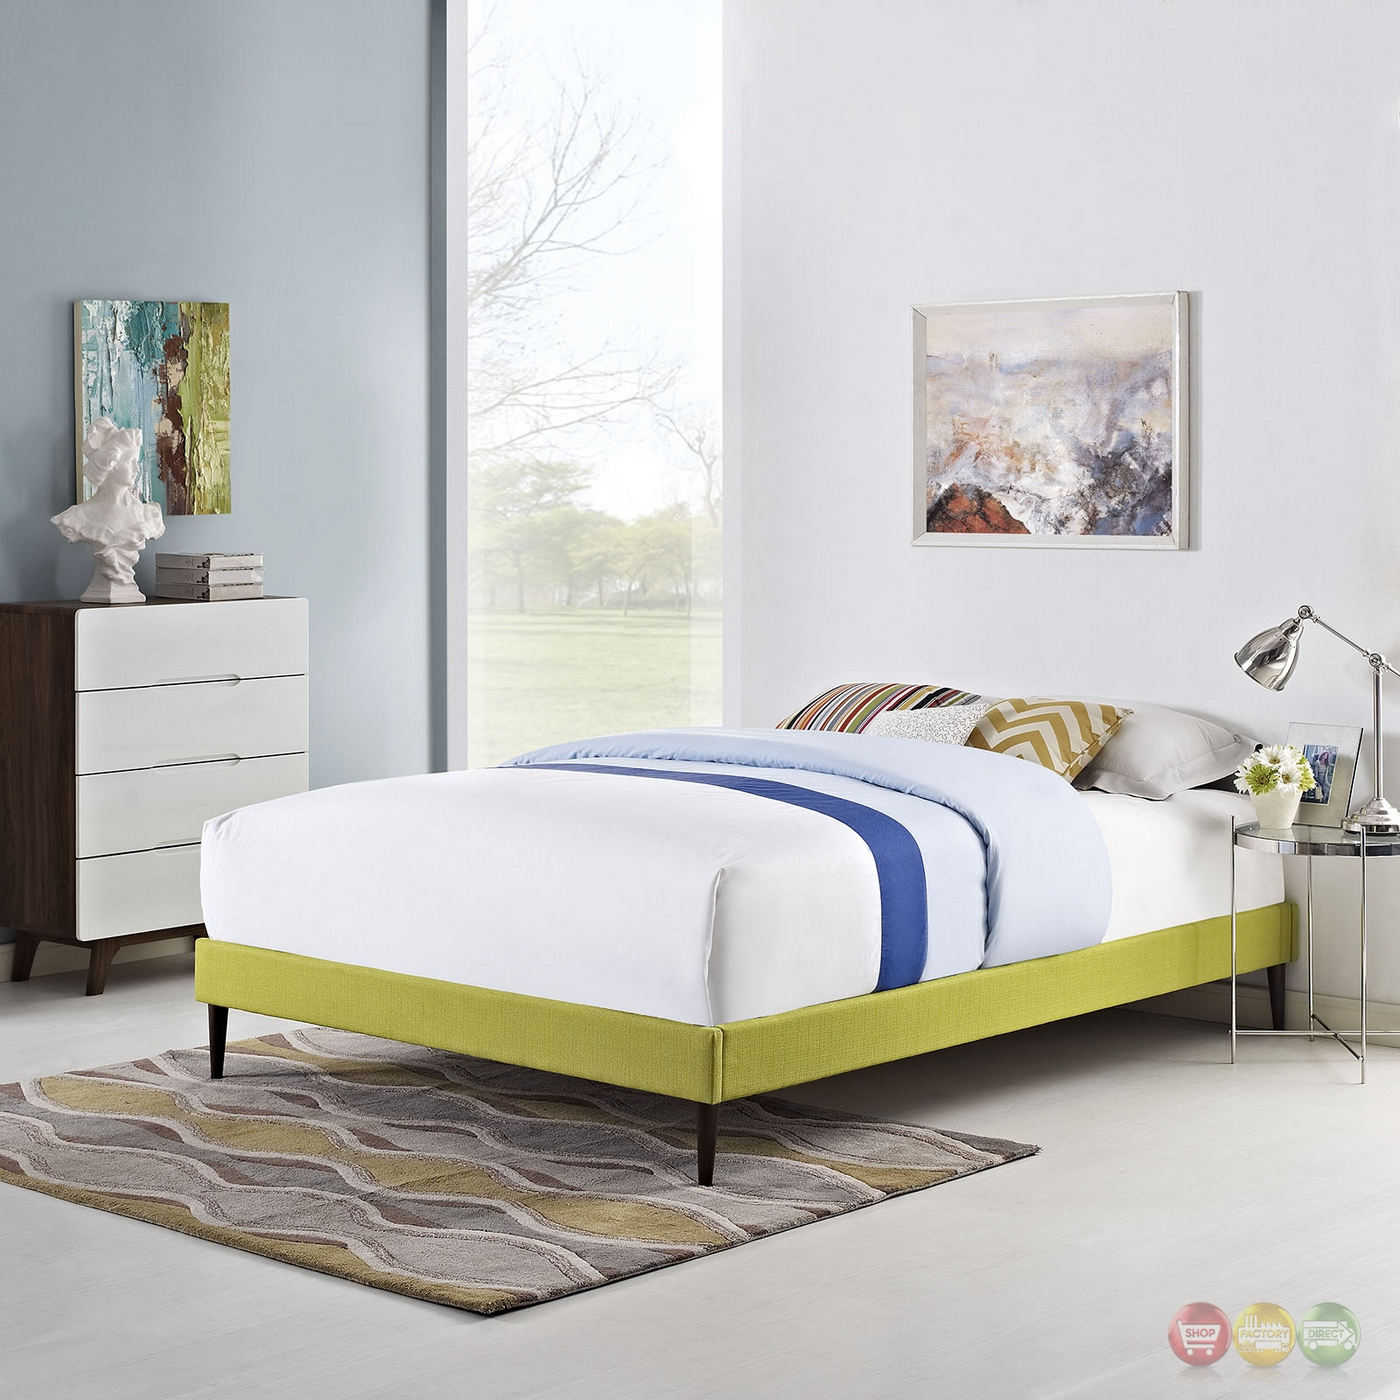 Sherry upholstered fabric king platform bed frame wheatgrass for Upholstered platform bed frame